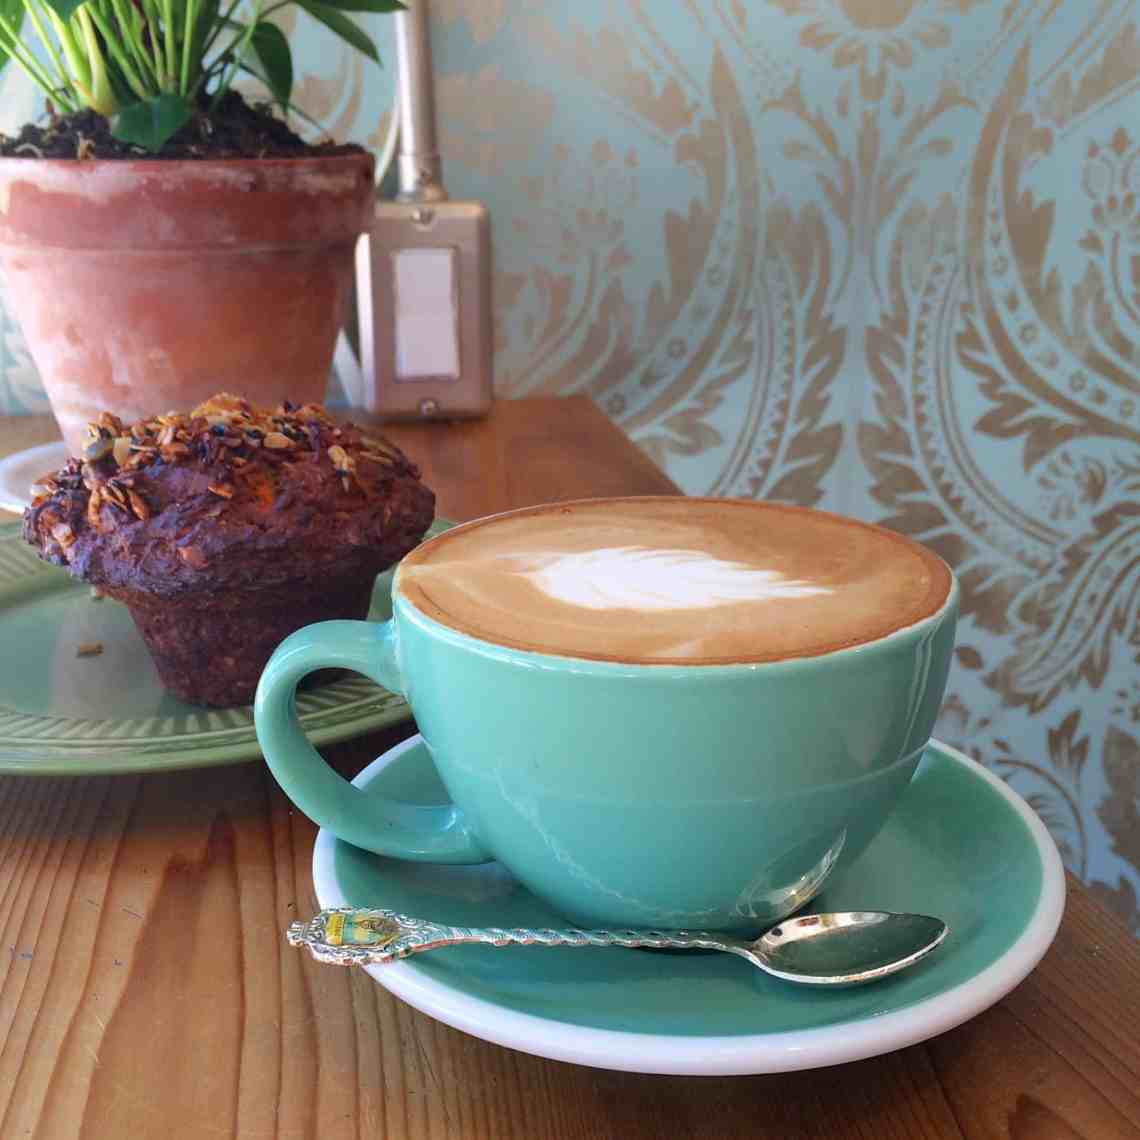 Fantail Bakery and Cafe